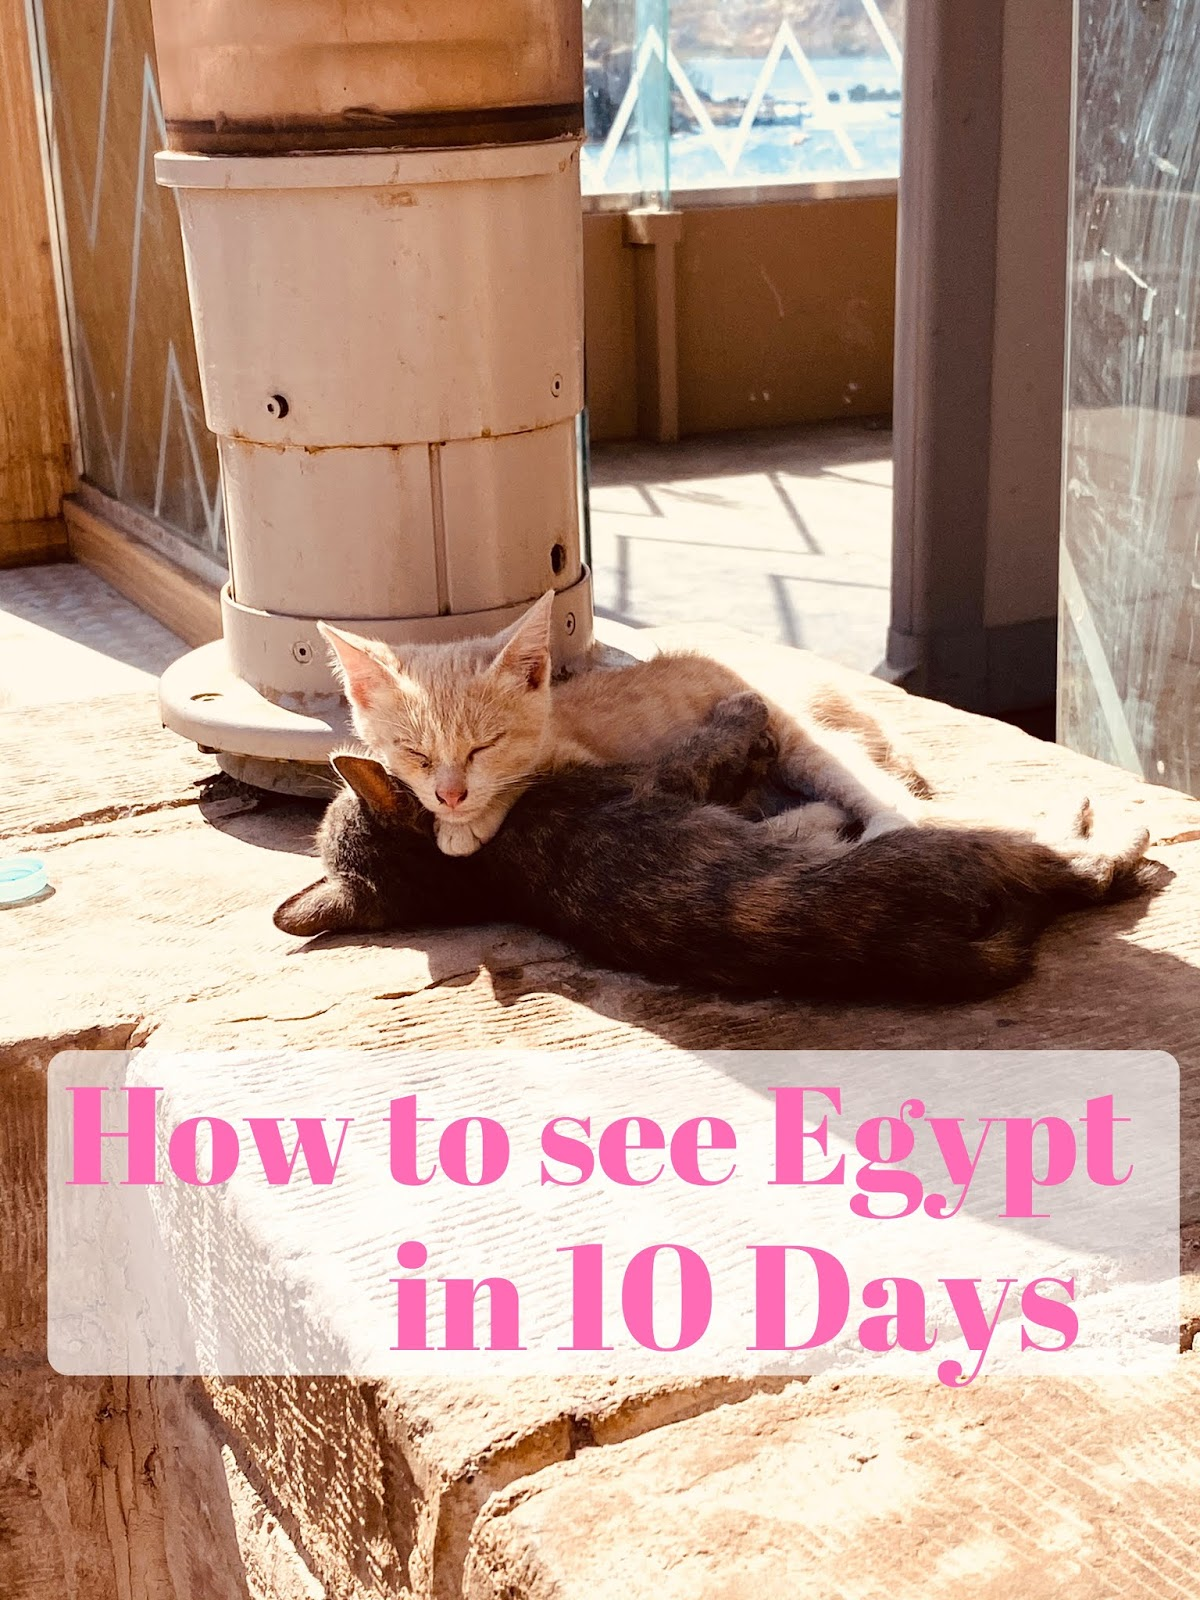 visiting egypt, egypt itinerary, Egypt travel, traveling to egypt, 10 days in egypt, how to see egypt in a week, egypt in a week, egypt travels, hot air balloon, pyramids, citadel, churches, mosques, horseback riding in egypt, riding a camel in egypt, camel rides, aswan, luxor,